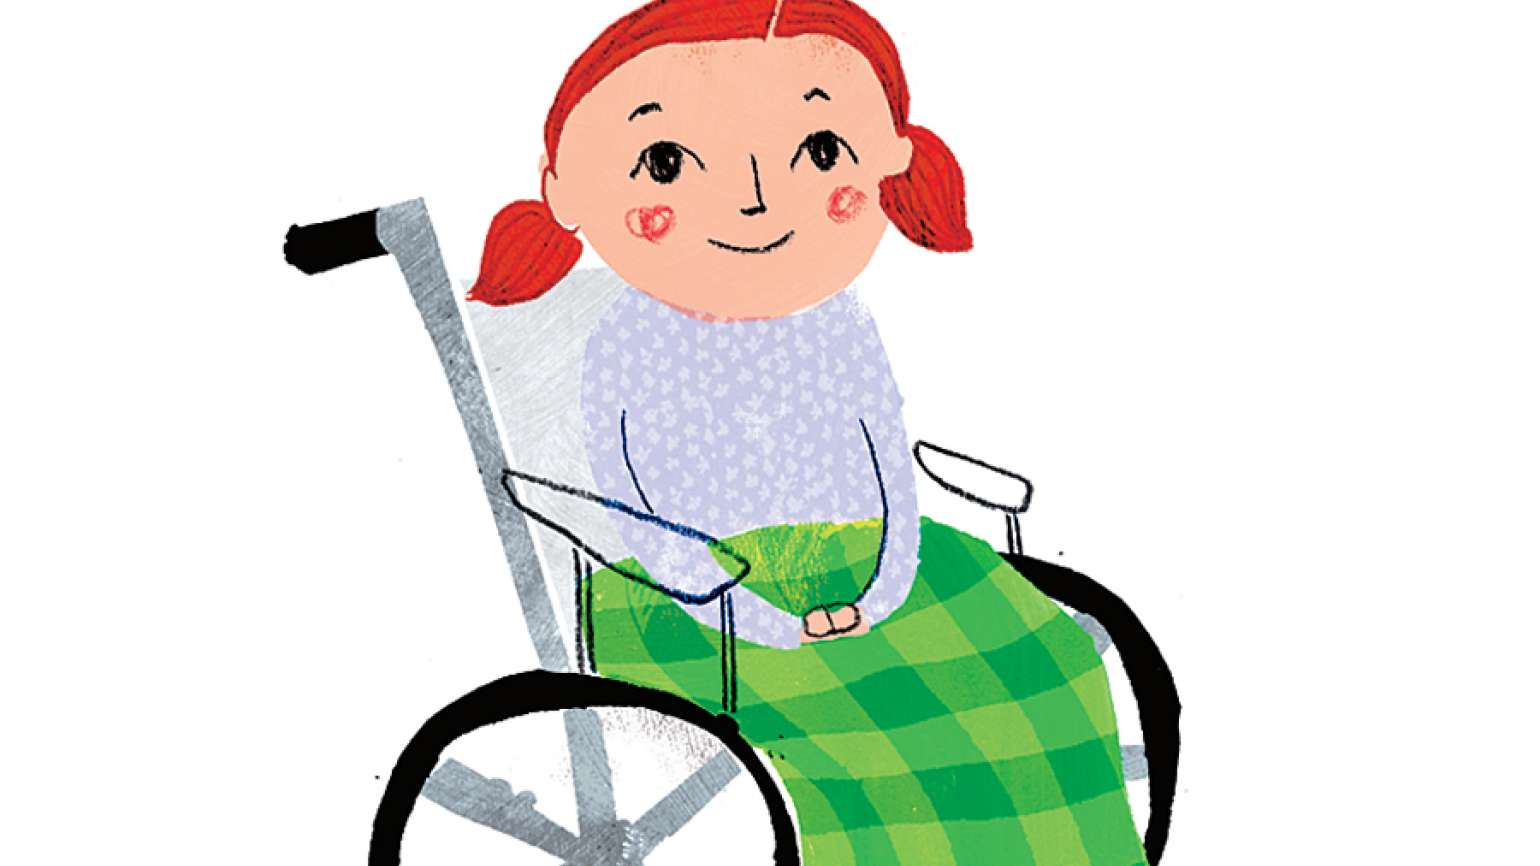 A pig-tailed girl in a wheelchair with a fleeve blanket covering her lap